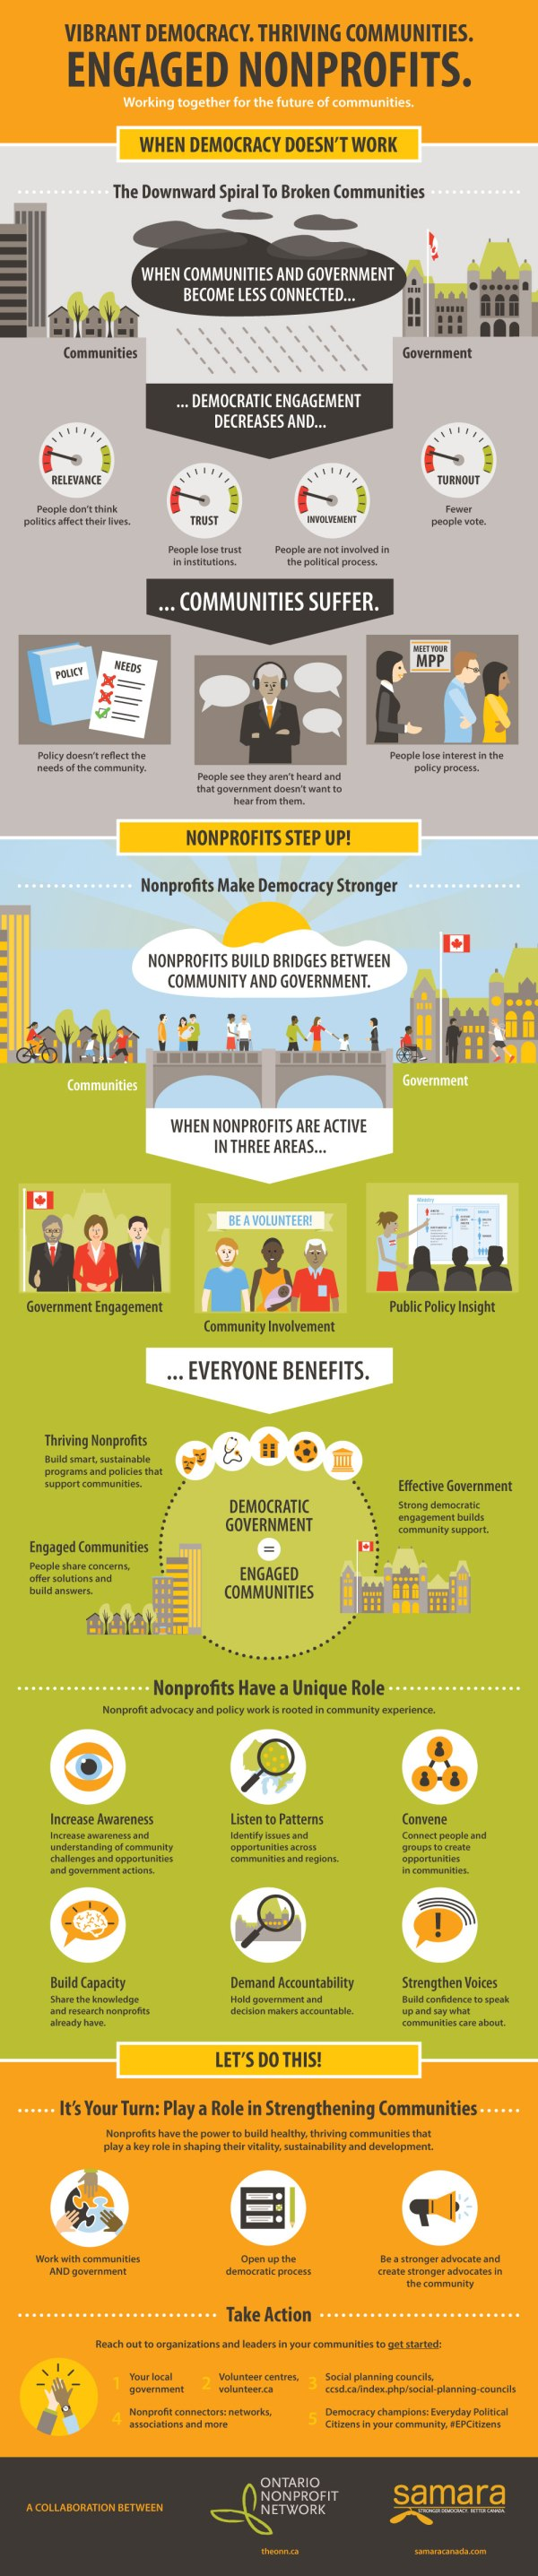 'Vibrant Democracy. Thriving Communities. Engaged Nonprofits' infographic by KAP Design.